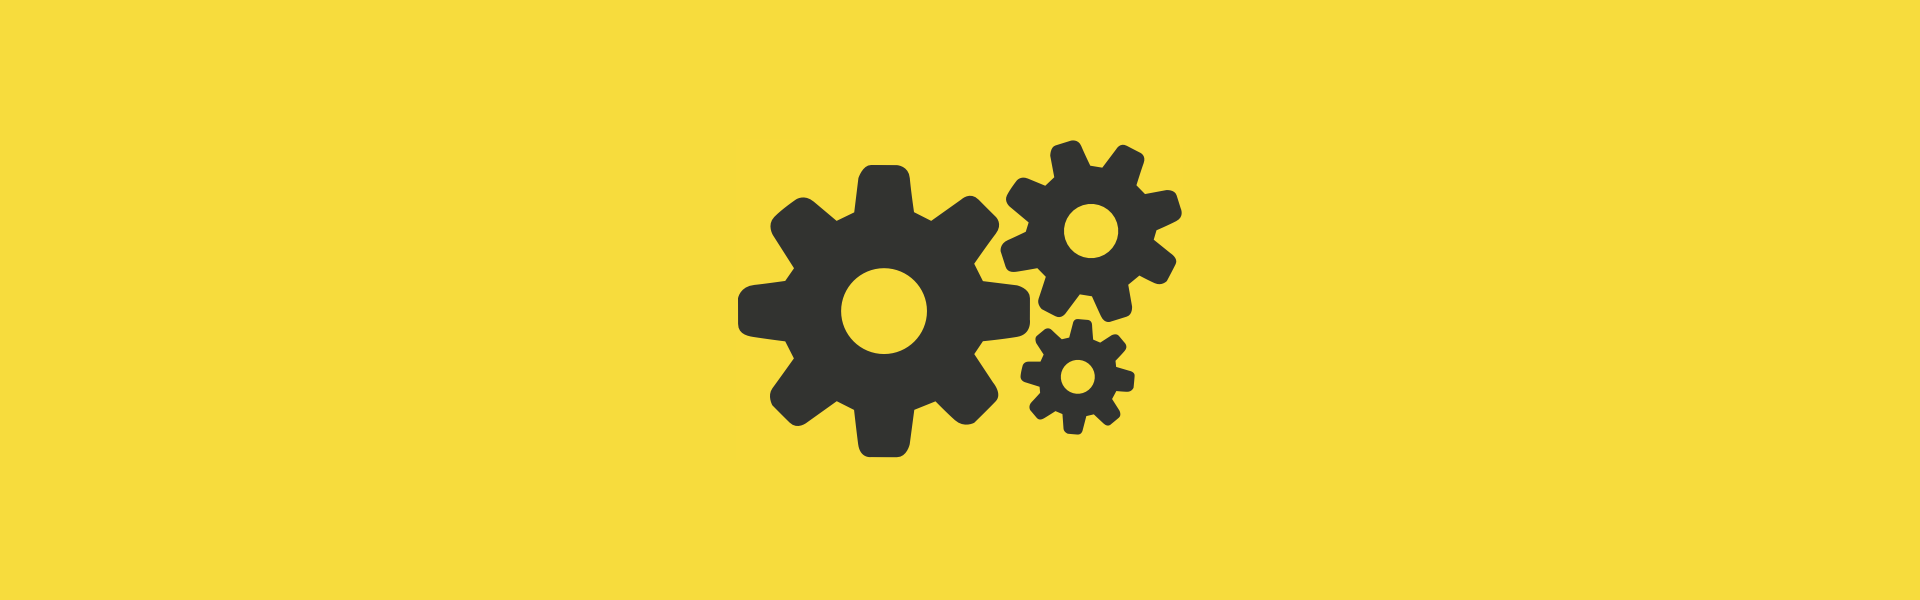 Three cogs on a yellow background, intended to represent the idea of the Service Worker